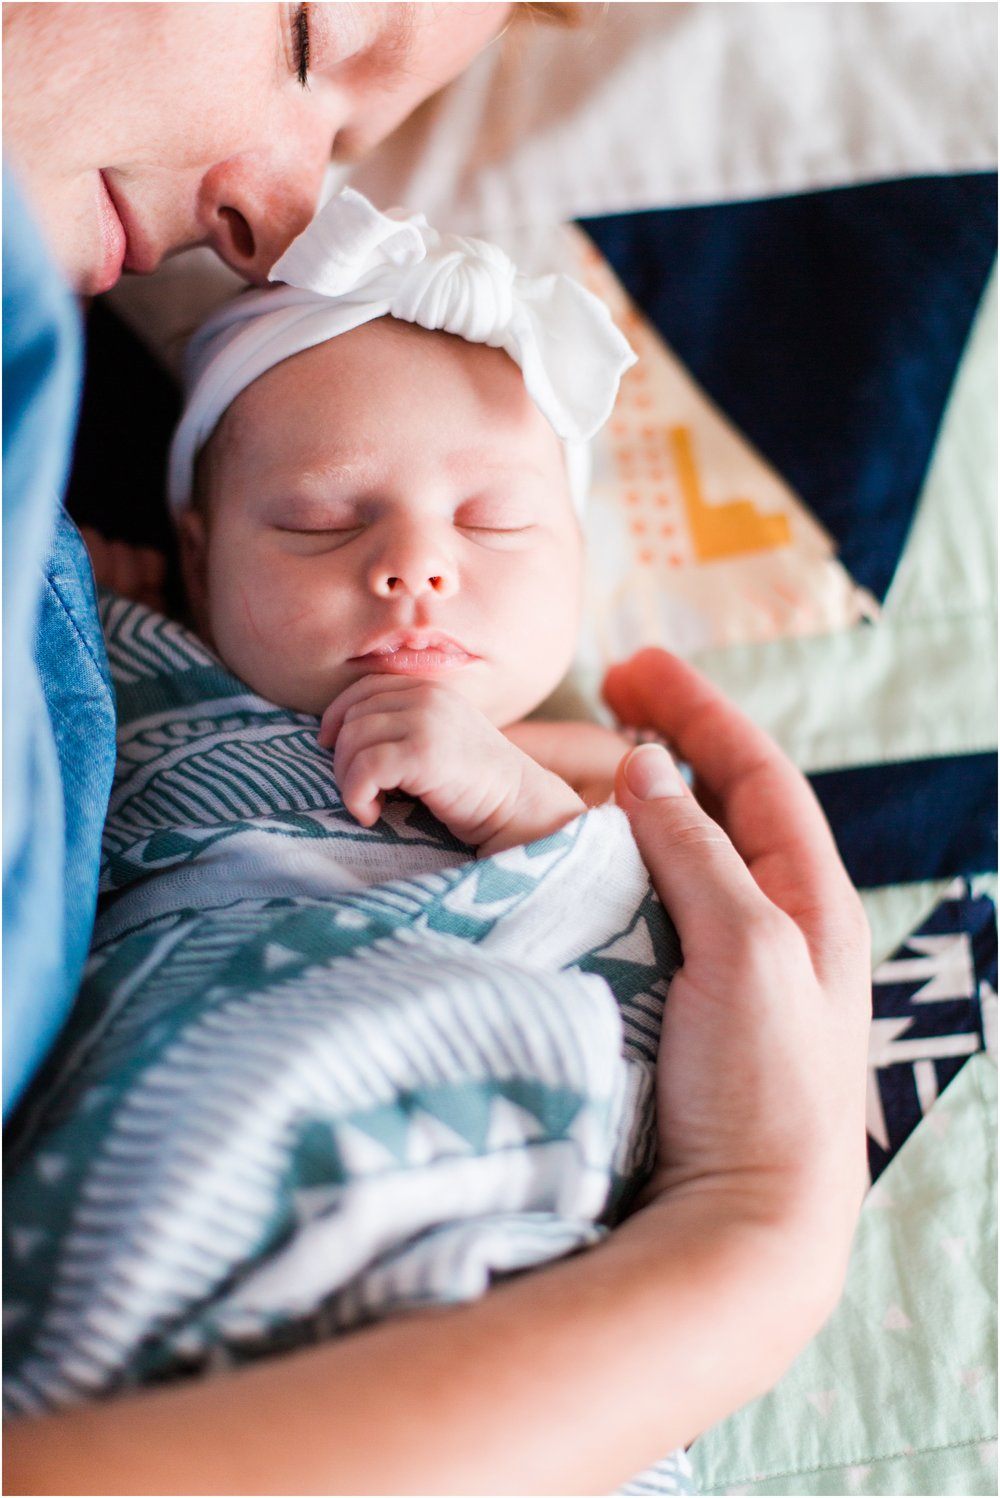 Seattle lifestyle newborn photos by Briana Calderon Photography based in the Greater Seattle & Tacoma, WA_0717.jpg